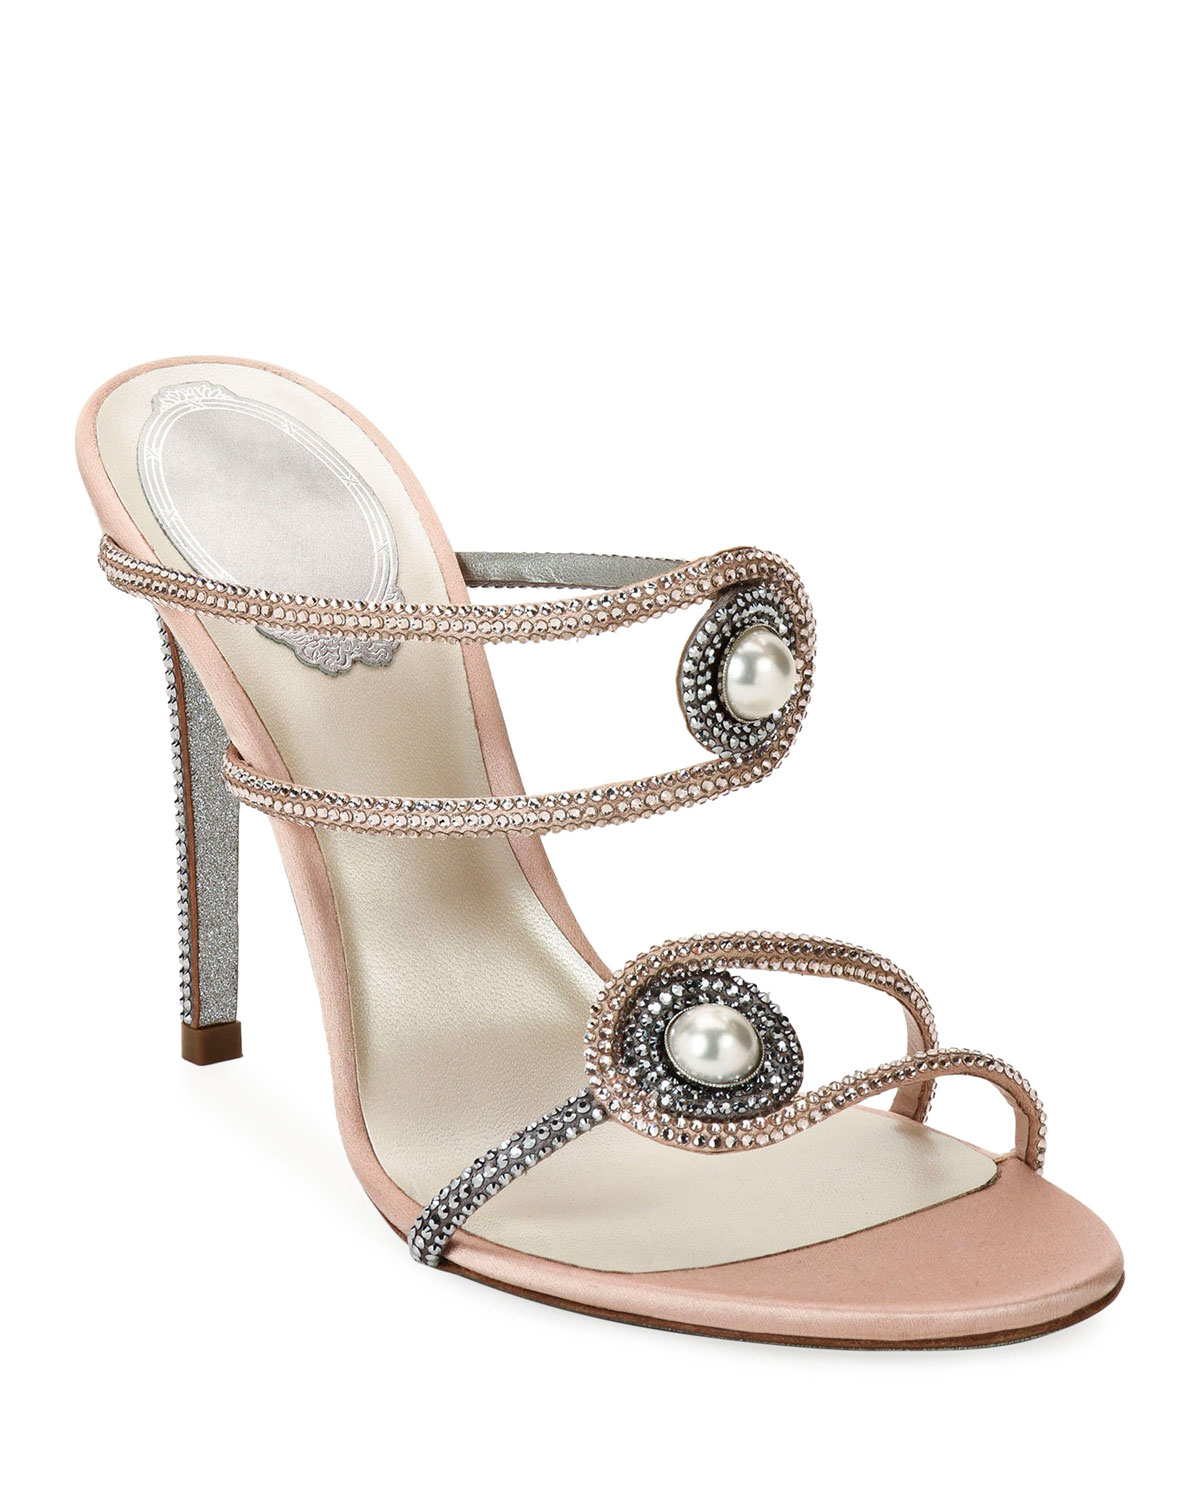 Pearly Embellished High-Heel Satin Sandals